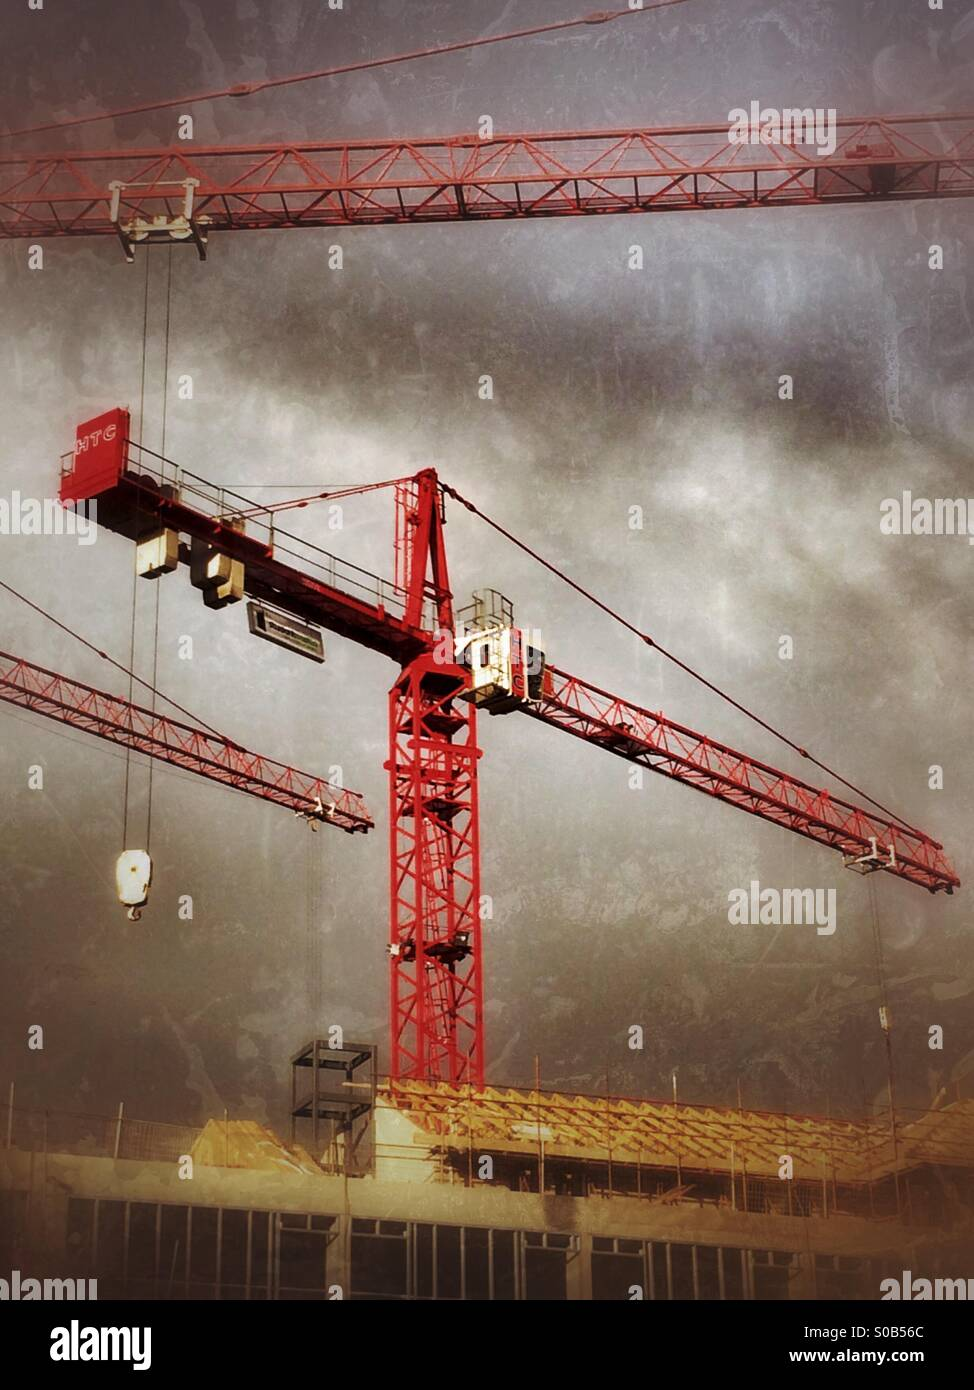 High tower cranes on a building site - Stock Image